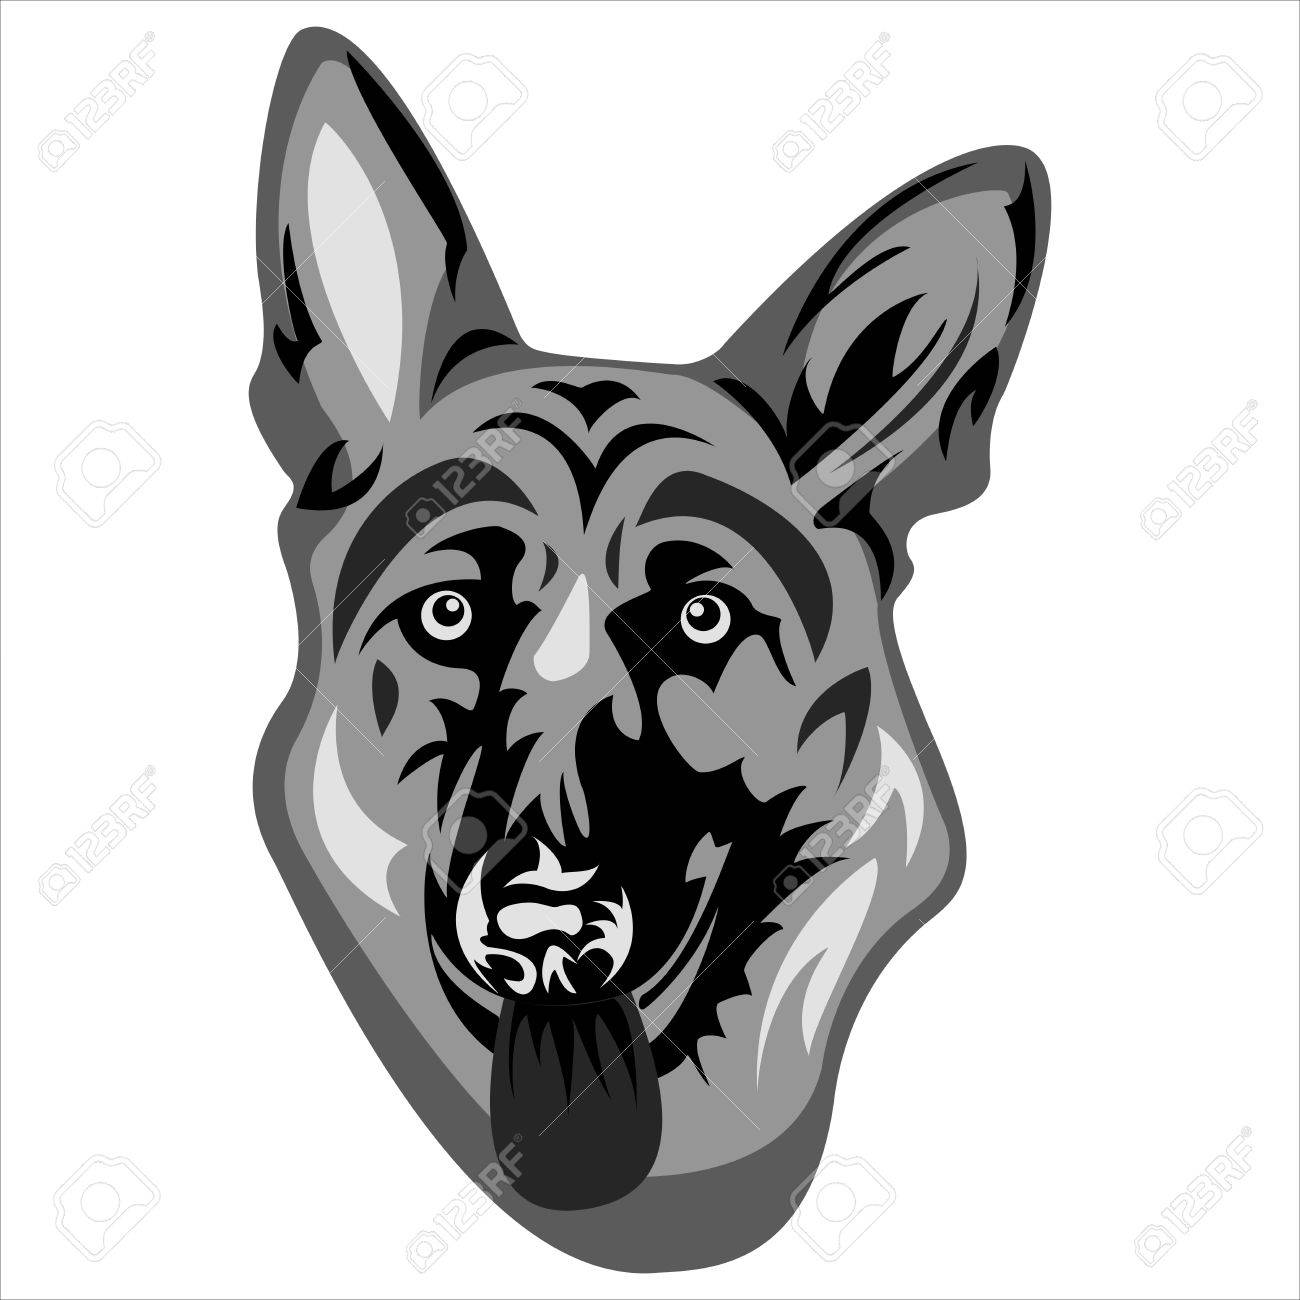 the logo with the face of a german shepherd on a white background rh 123rf com german shepherd looking dog german shepherd looks skinny